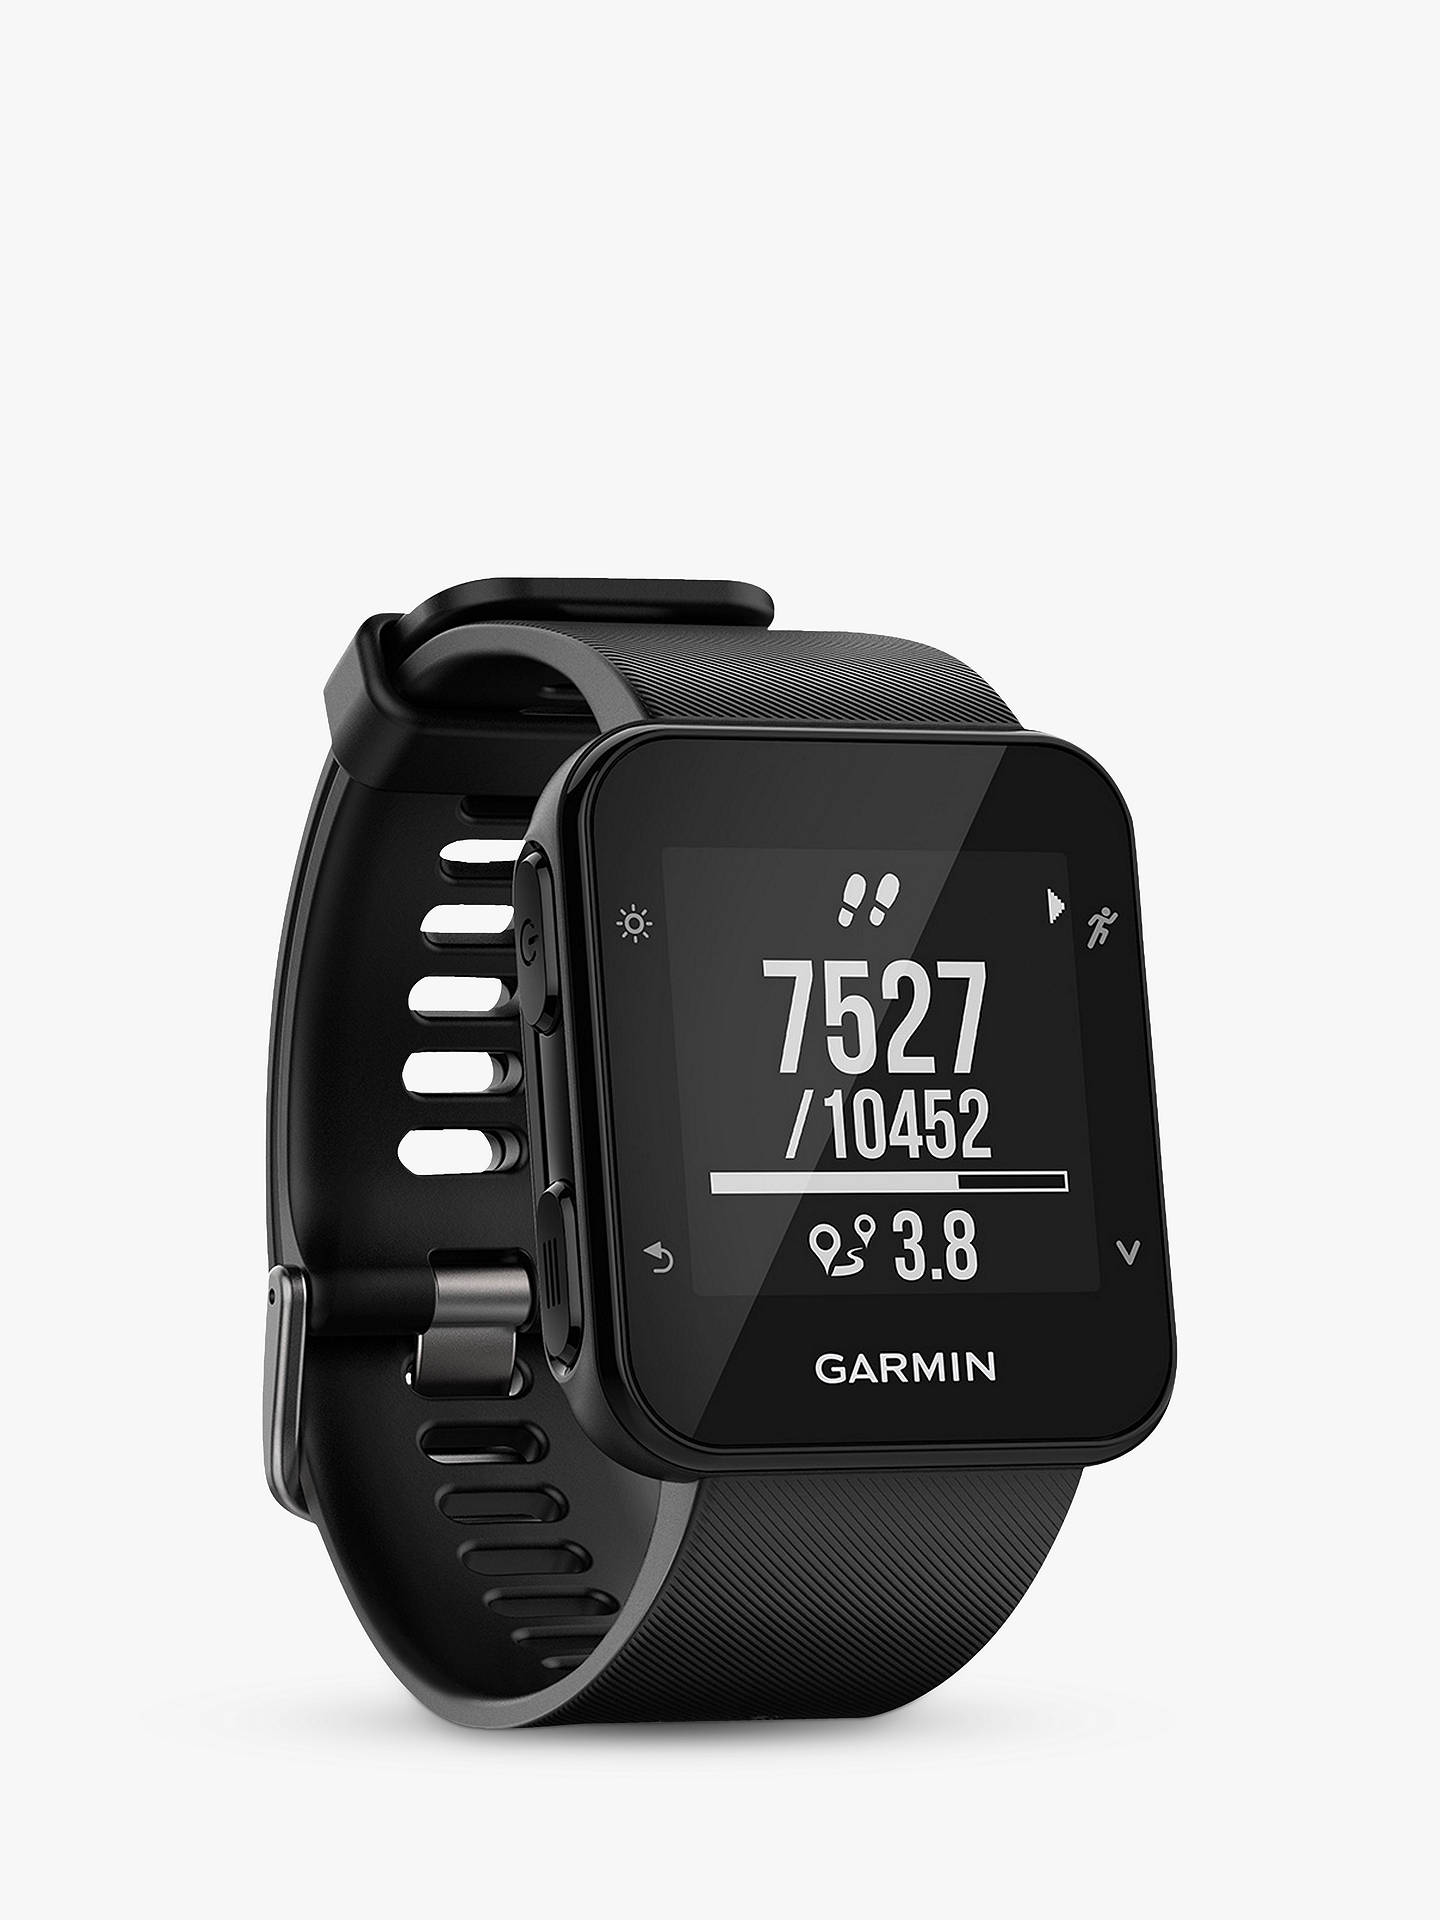 Garmin Forerunner 35 Wrist Heart Rate GPS Fitness Watch, Black